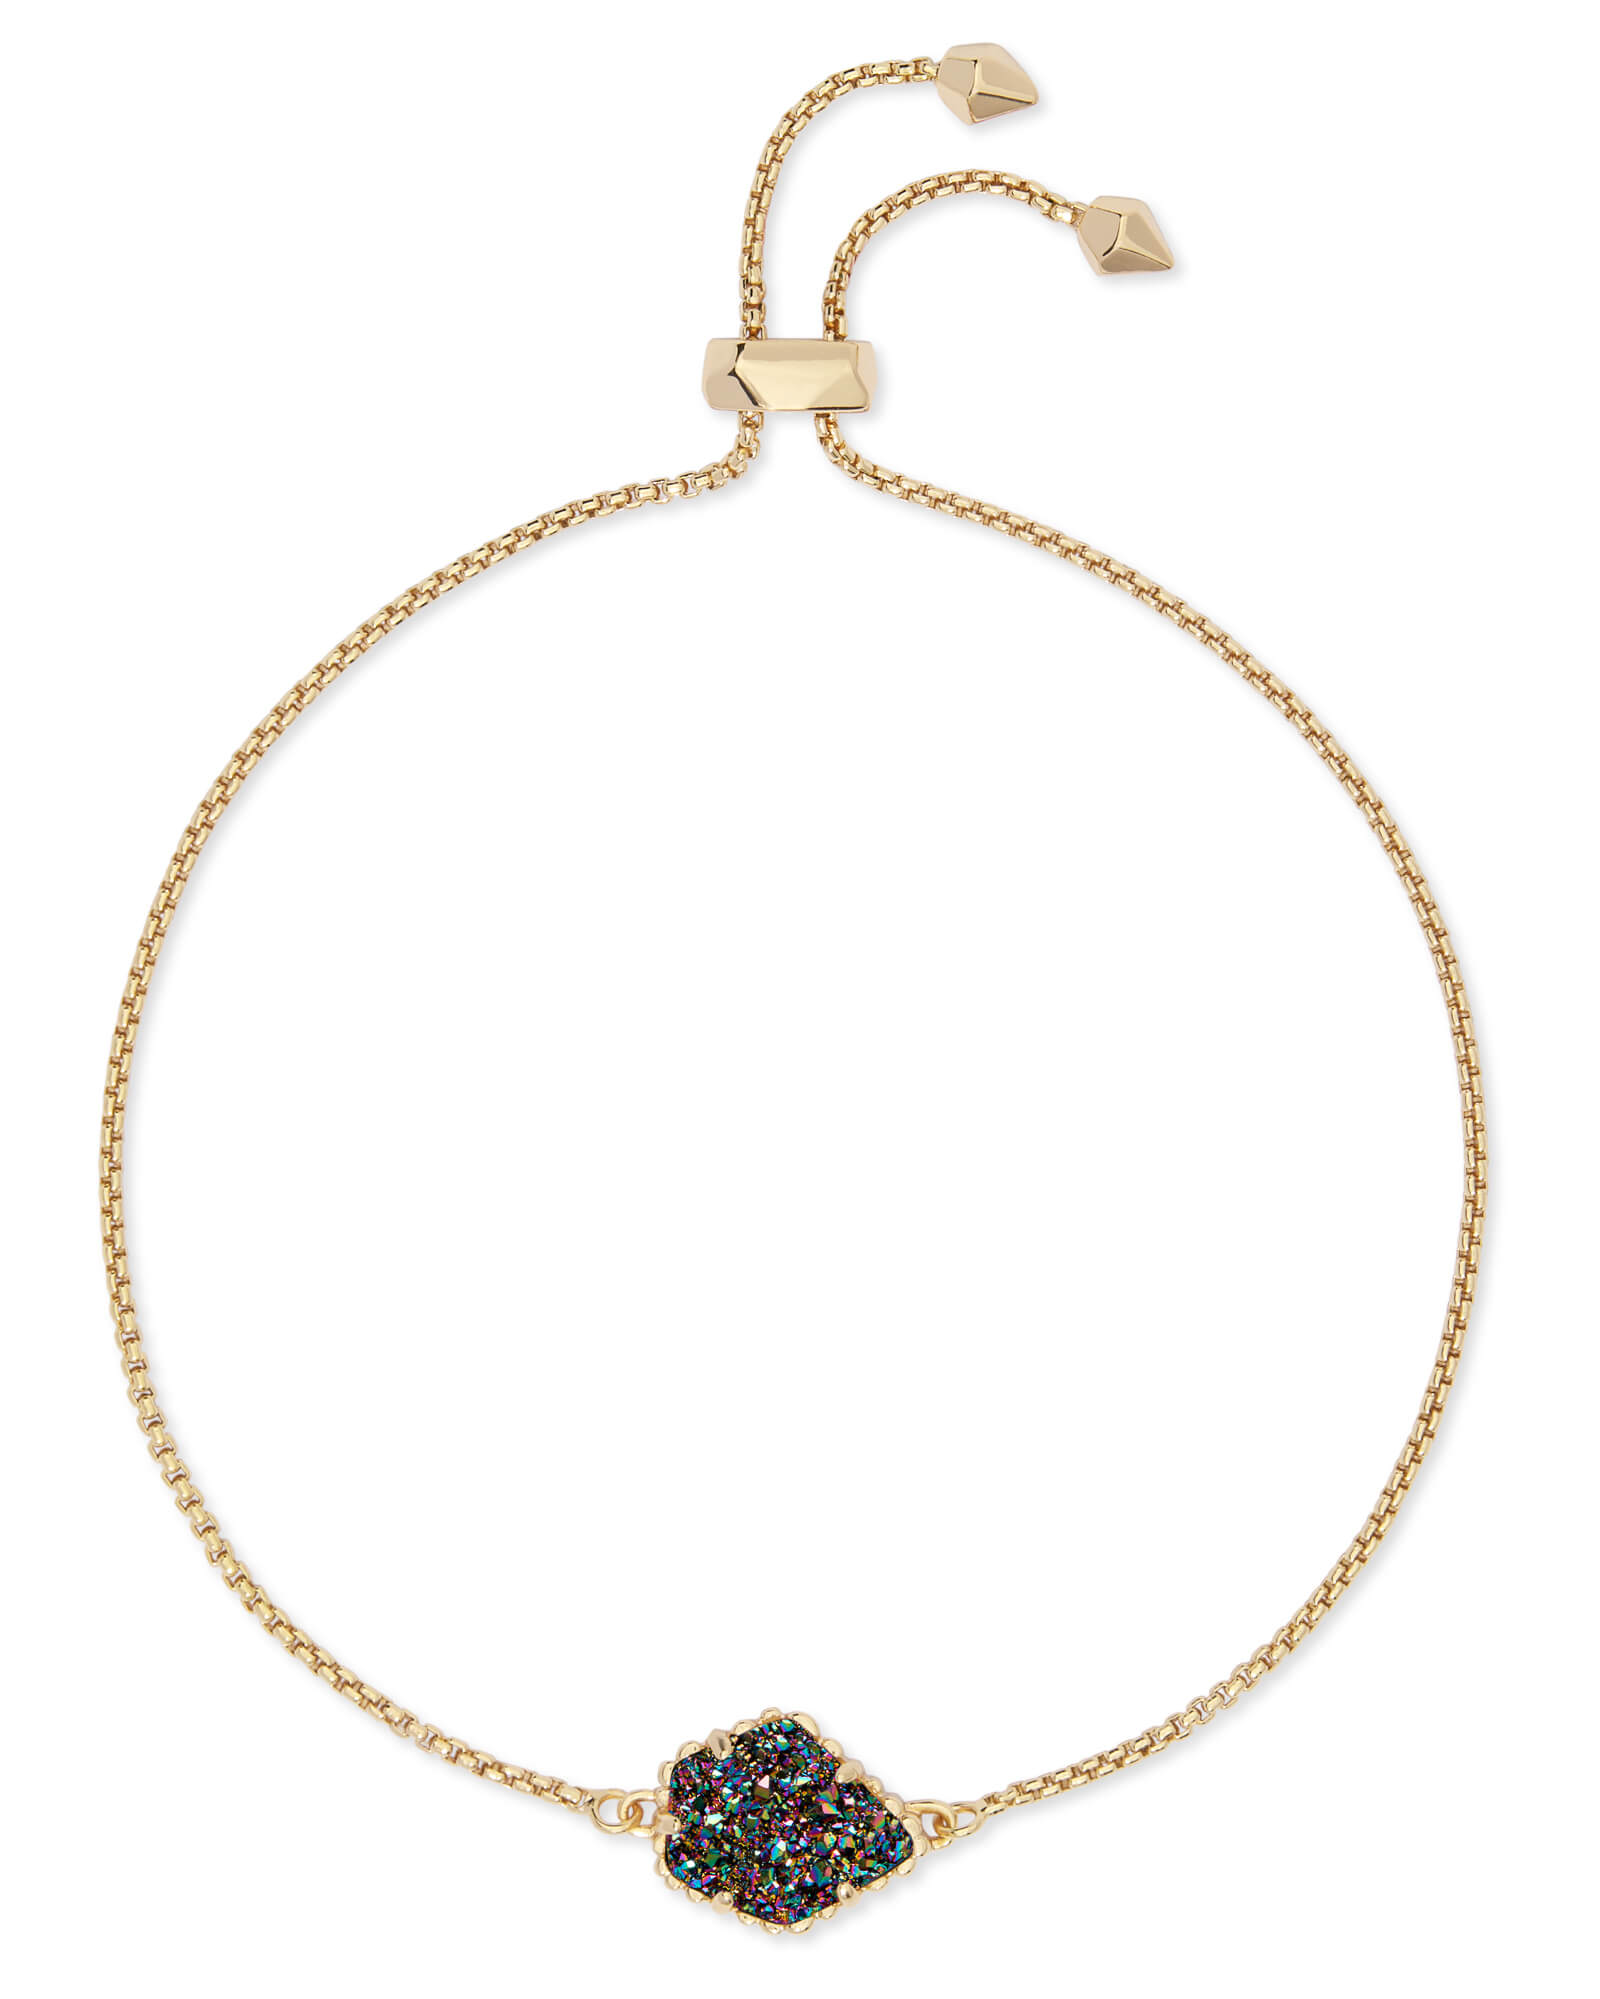 Theo Gold Adjustable Chain Bracelet in Multicolor Drusy